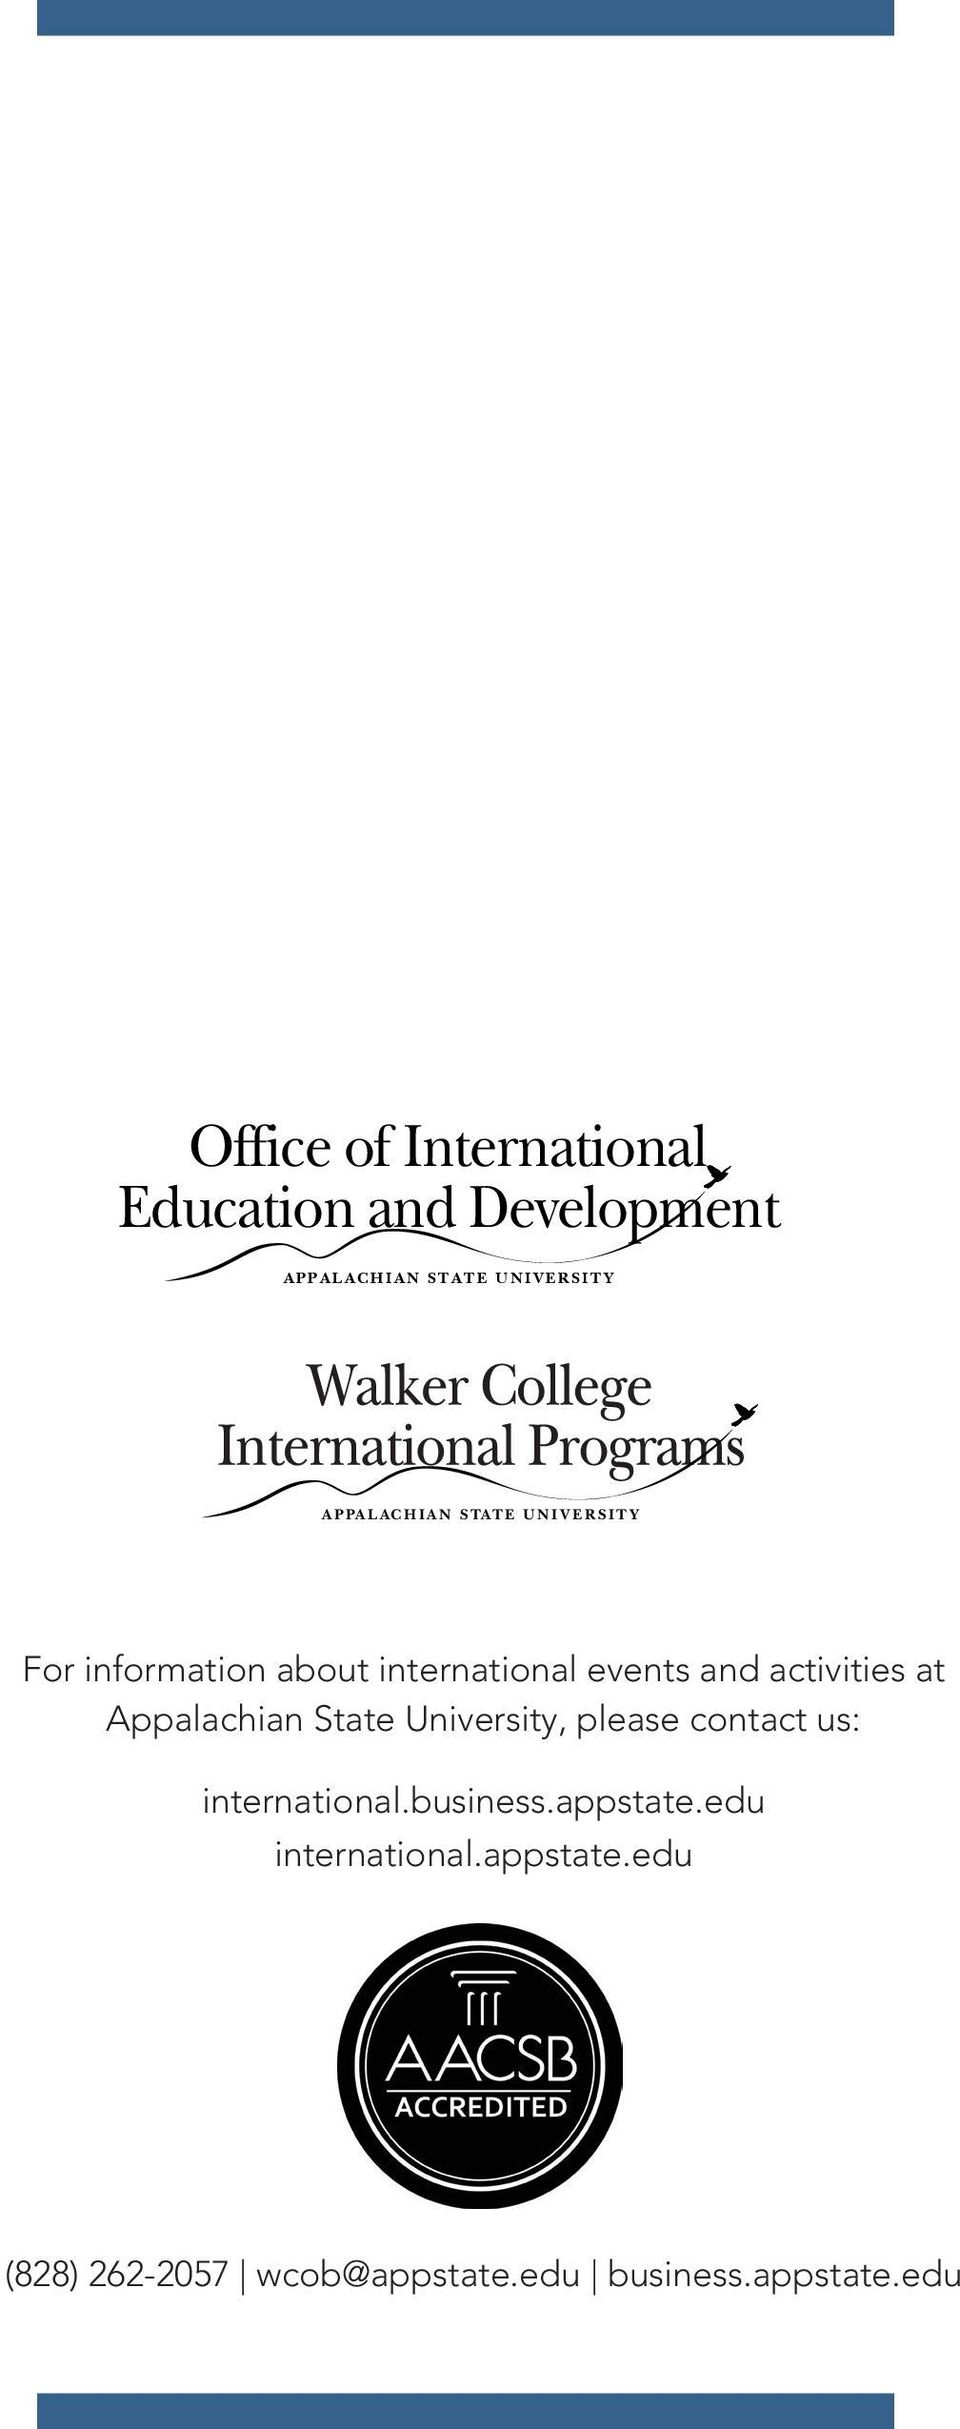 Appalachian State University, please contact us: international.business.